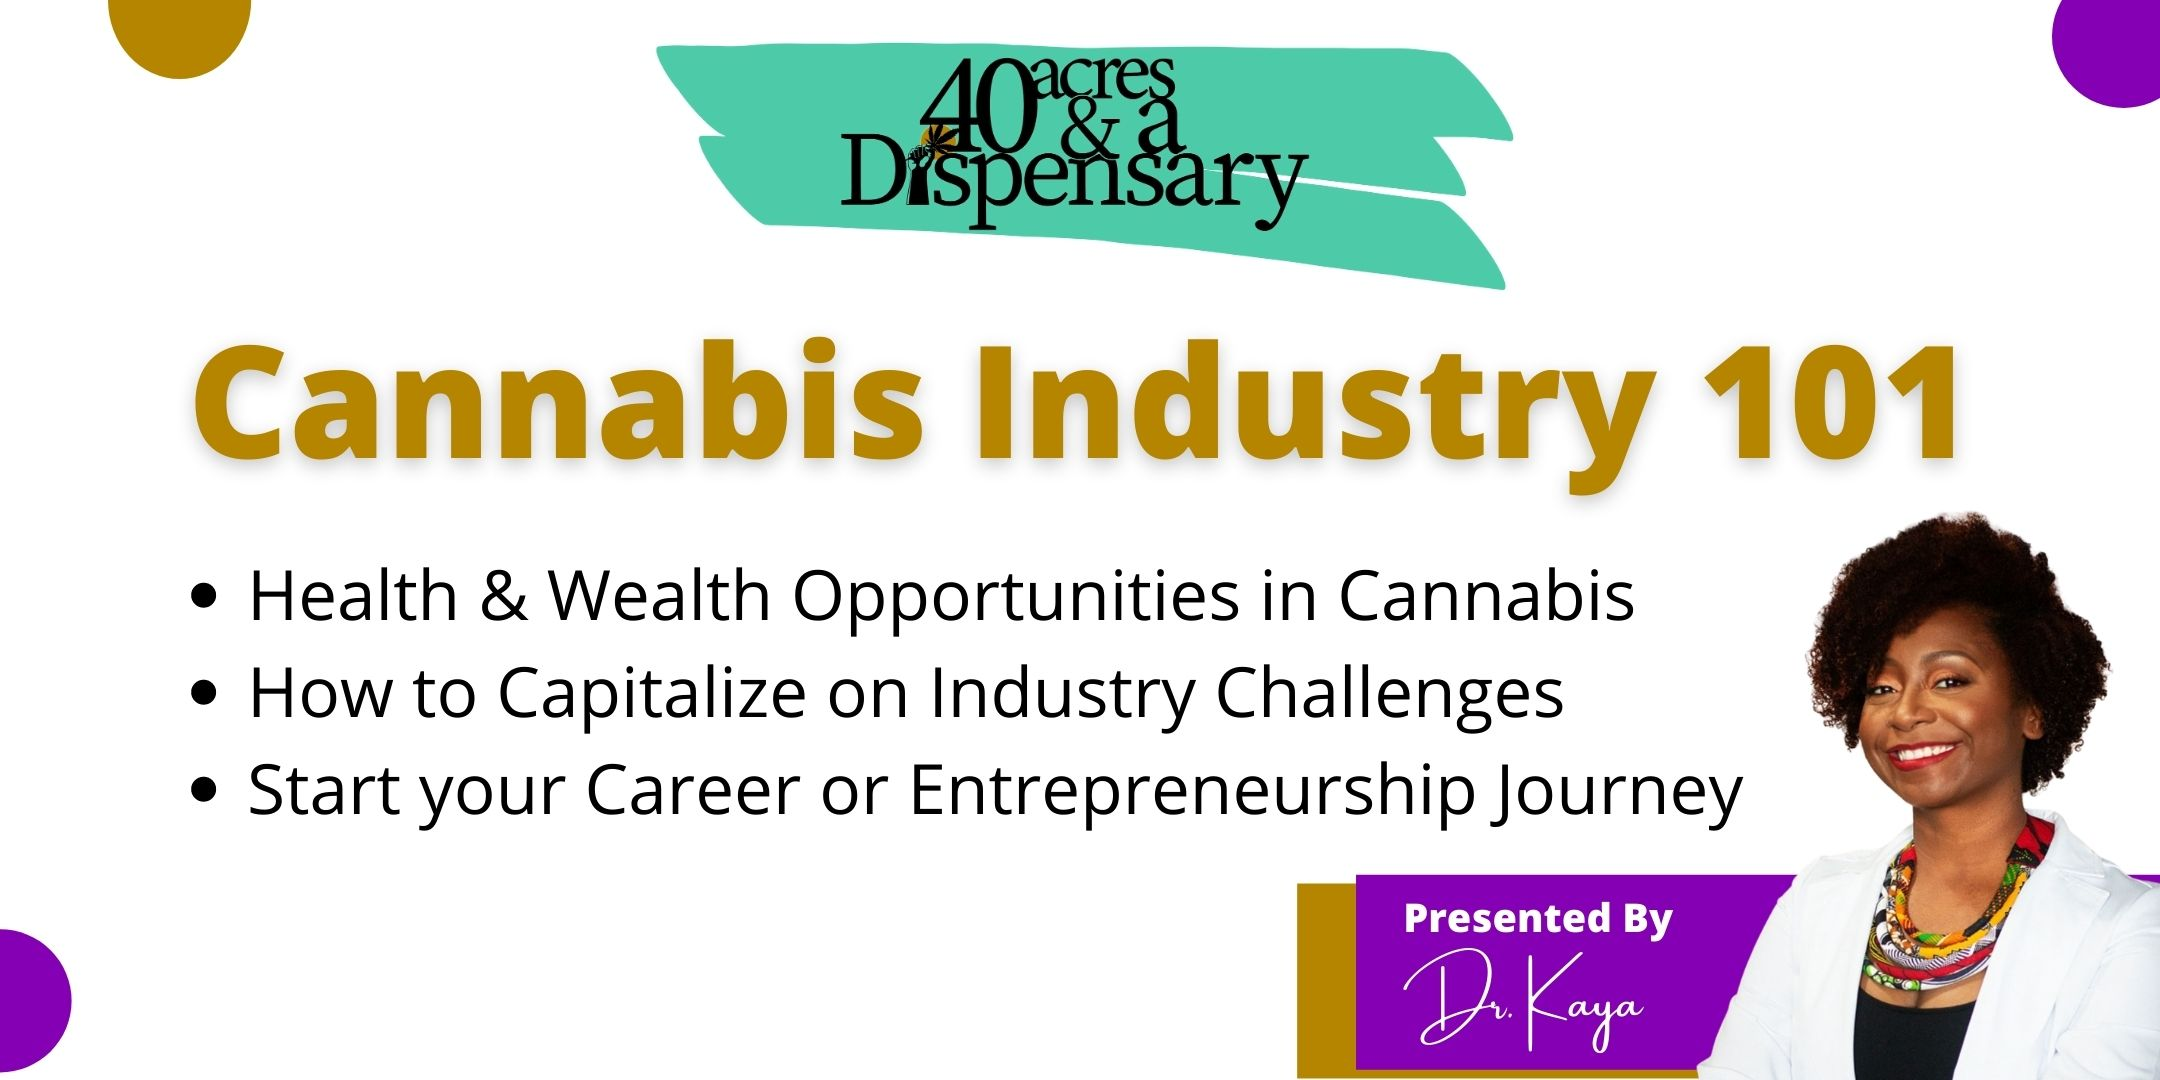 40 Acres And A Dispensary: Cannabis Industry 101 Webinar